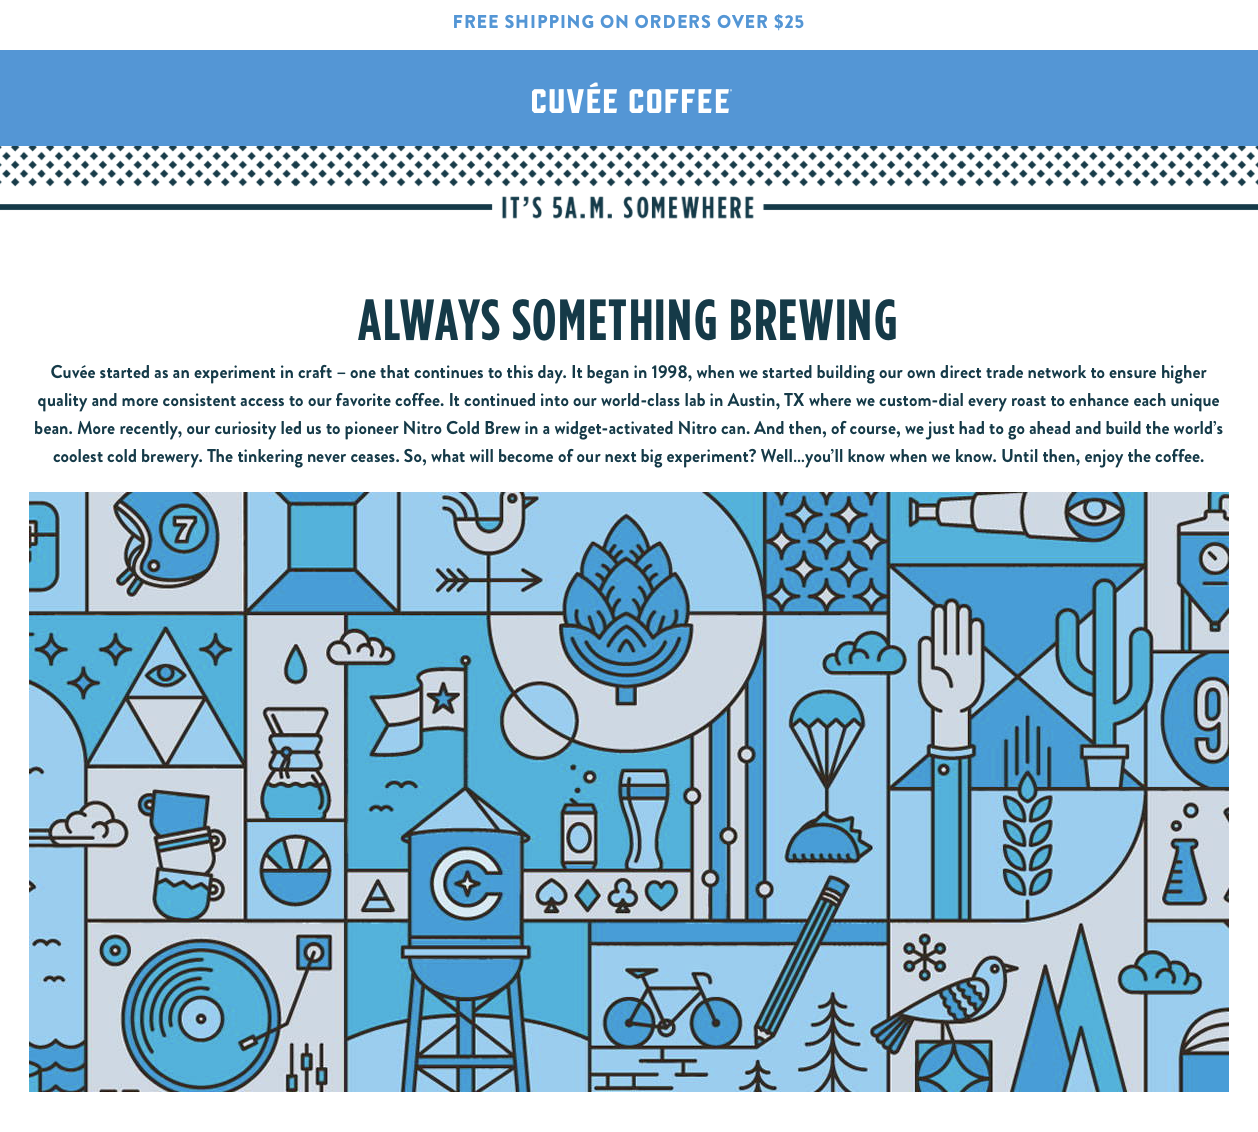 cuvee coffee example of food and beverage marketing